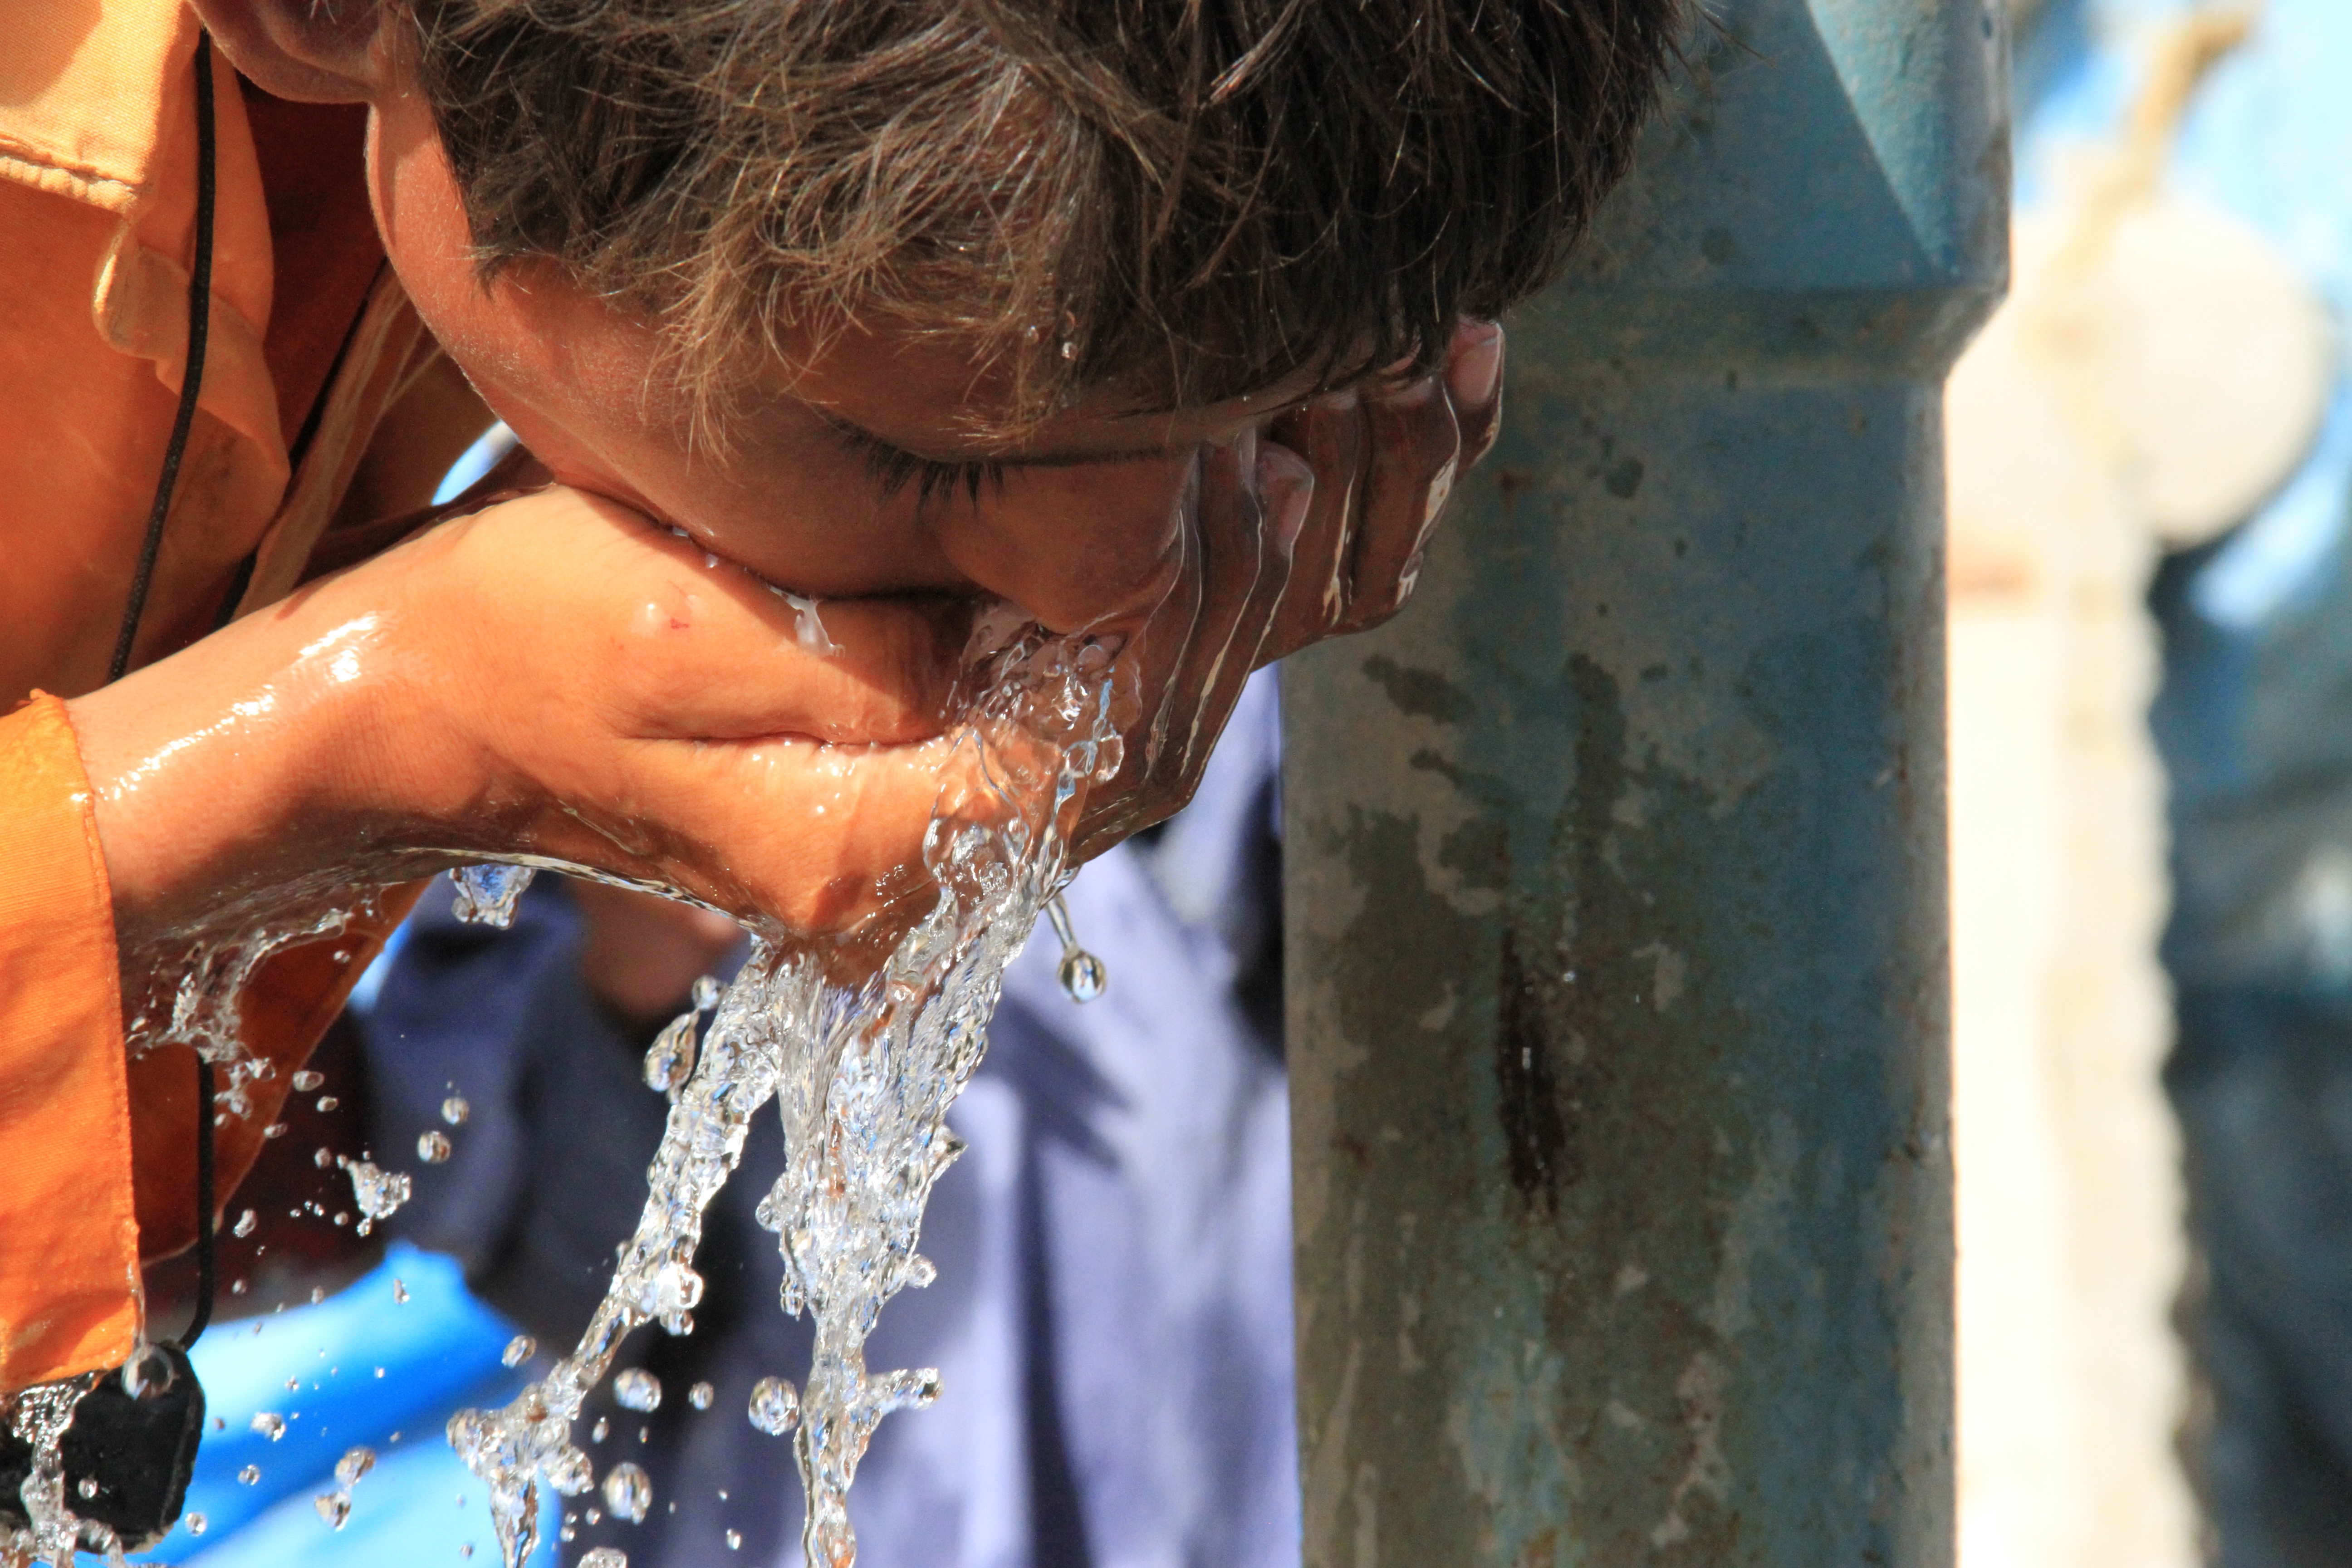 File:Providing clean water to millions of people.jpg ...